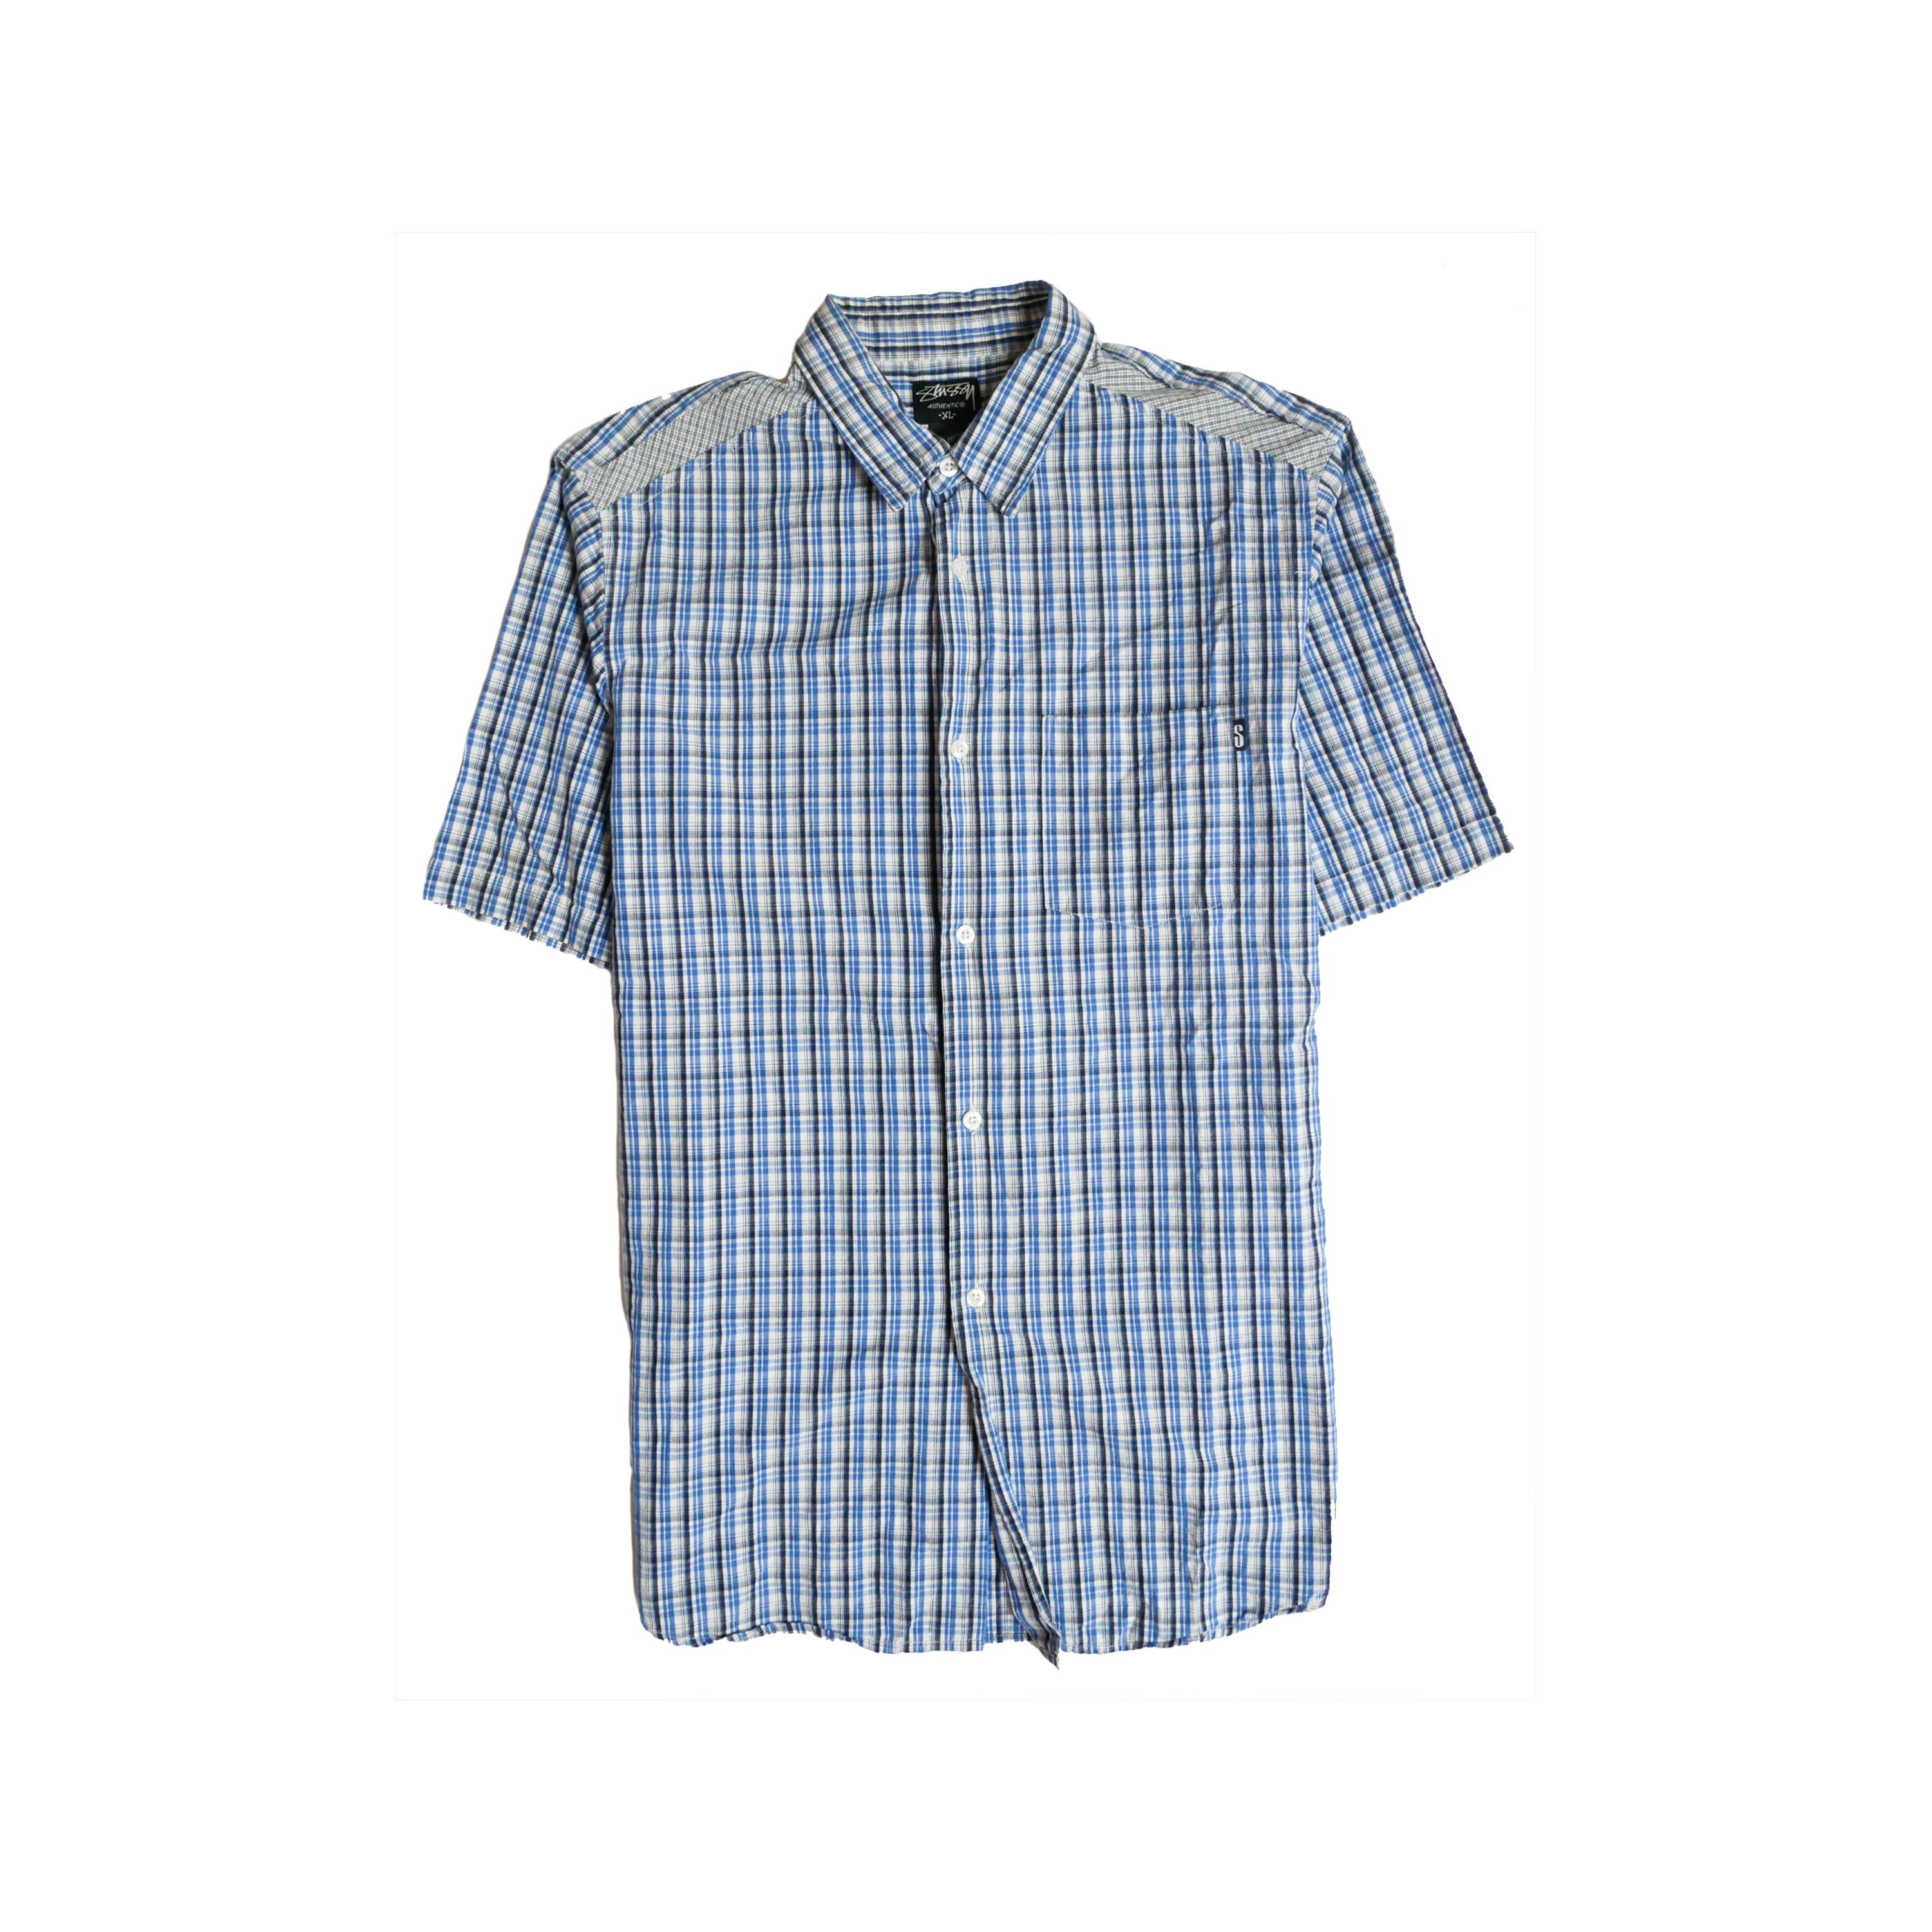 Stussy Checkered Shirt